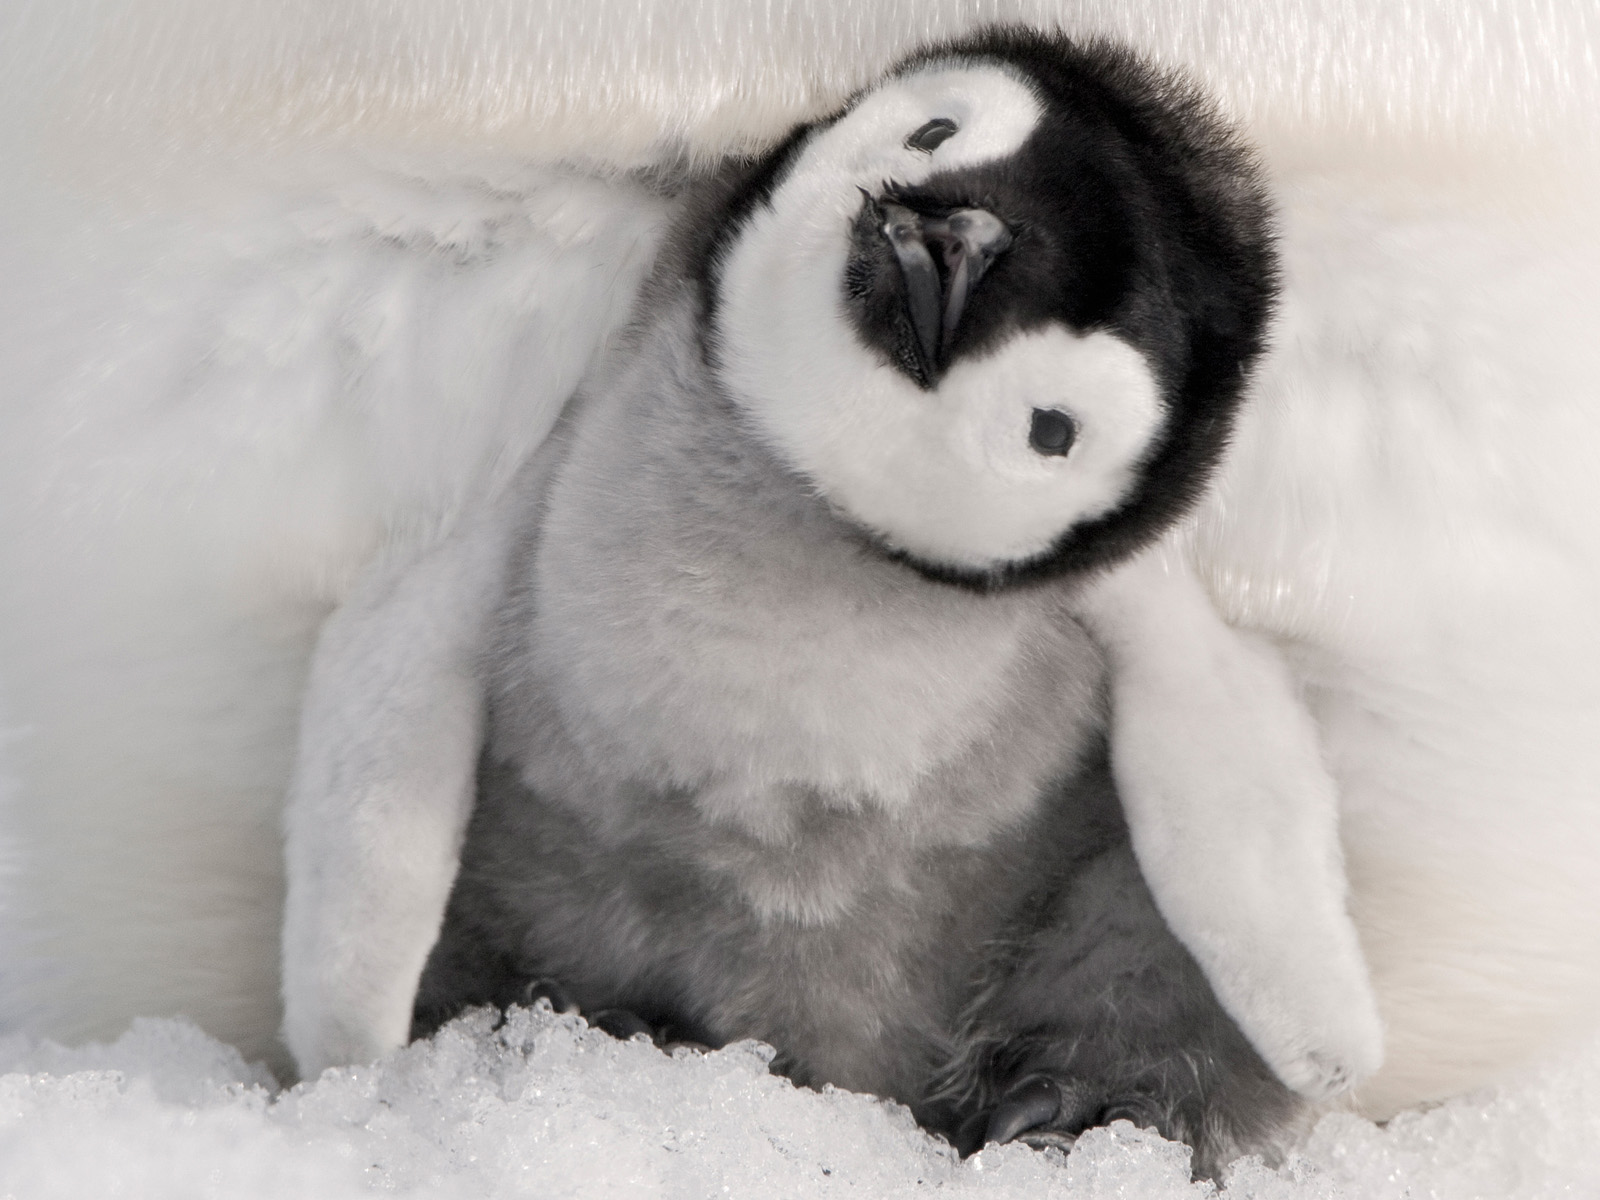 Cute Baby Pics Wallpapers 64 Images: Baby Penguin Wallpaper